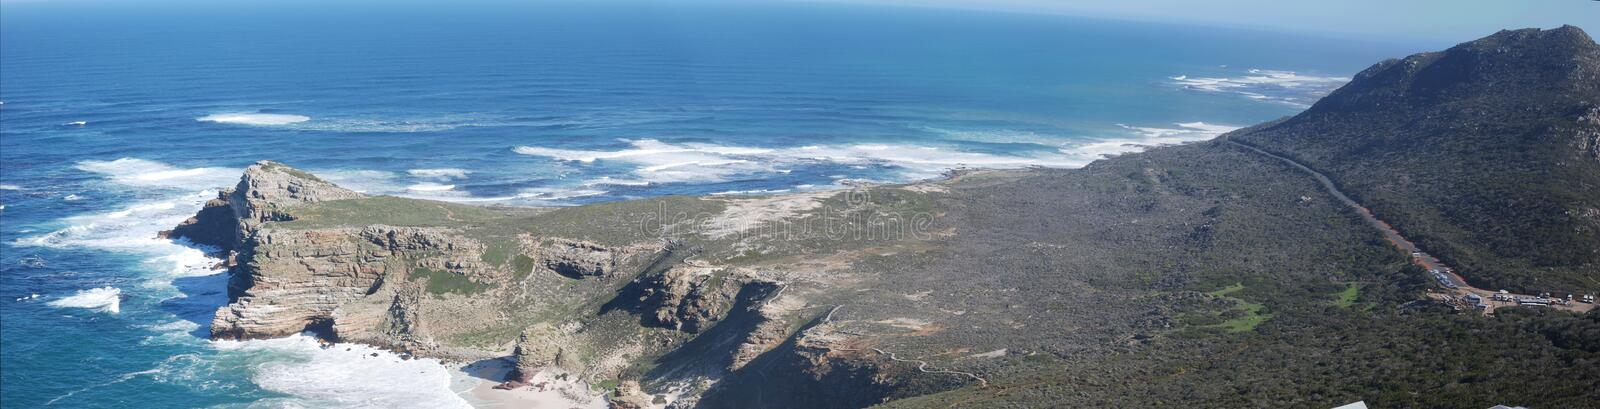 Areal like view of cape point panoramic wide shot royalty free stock image